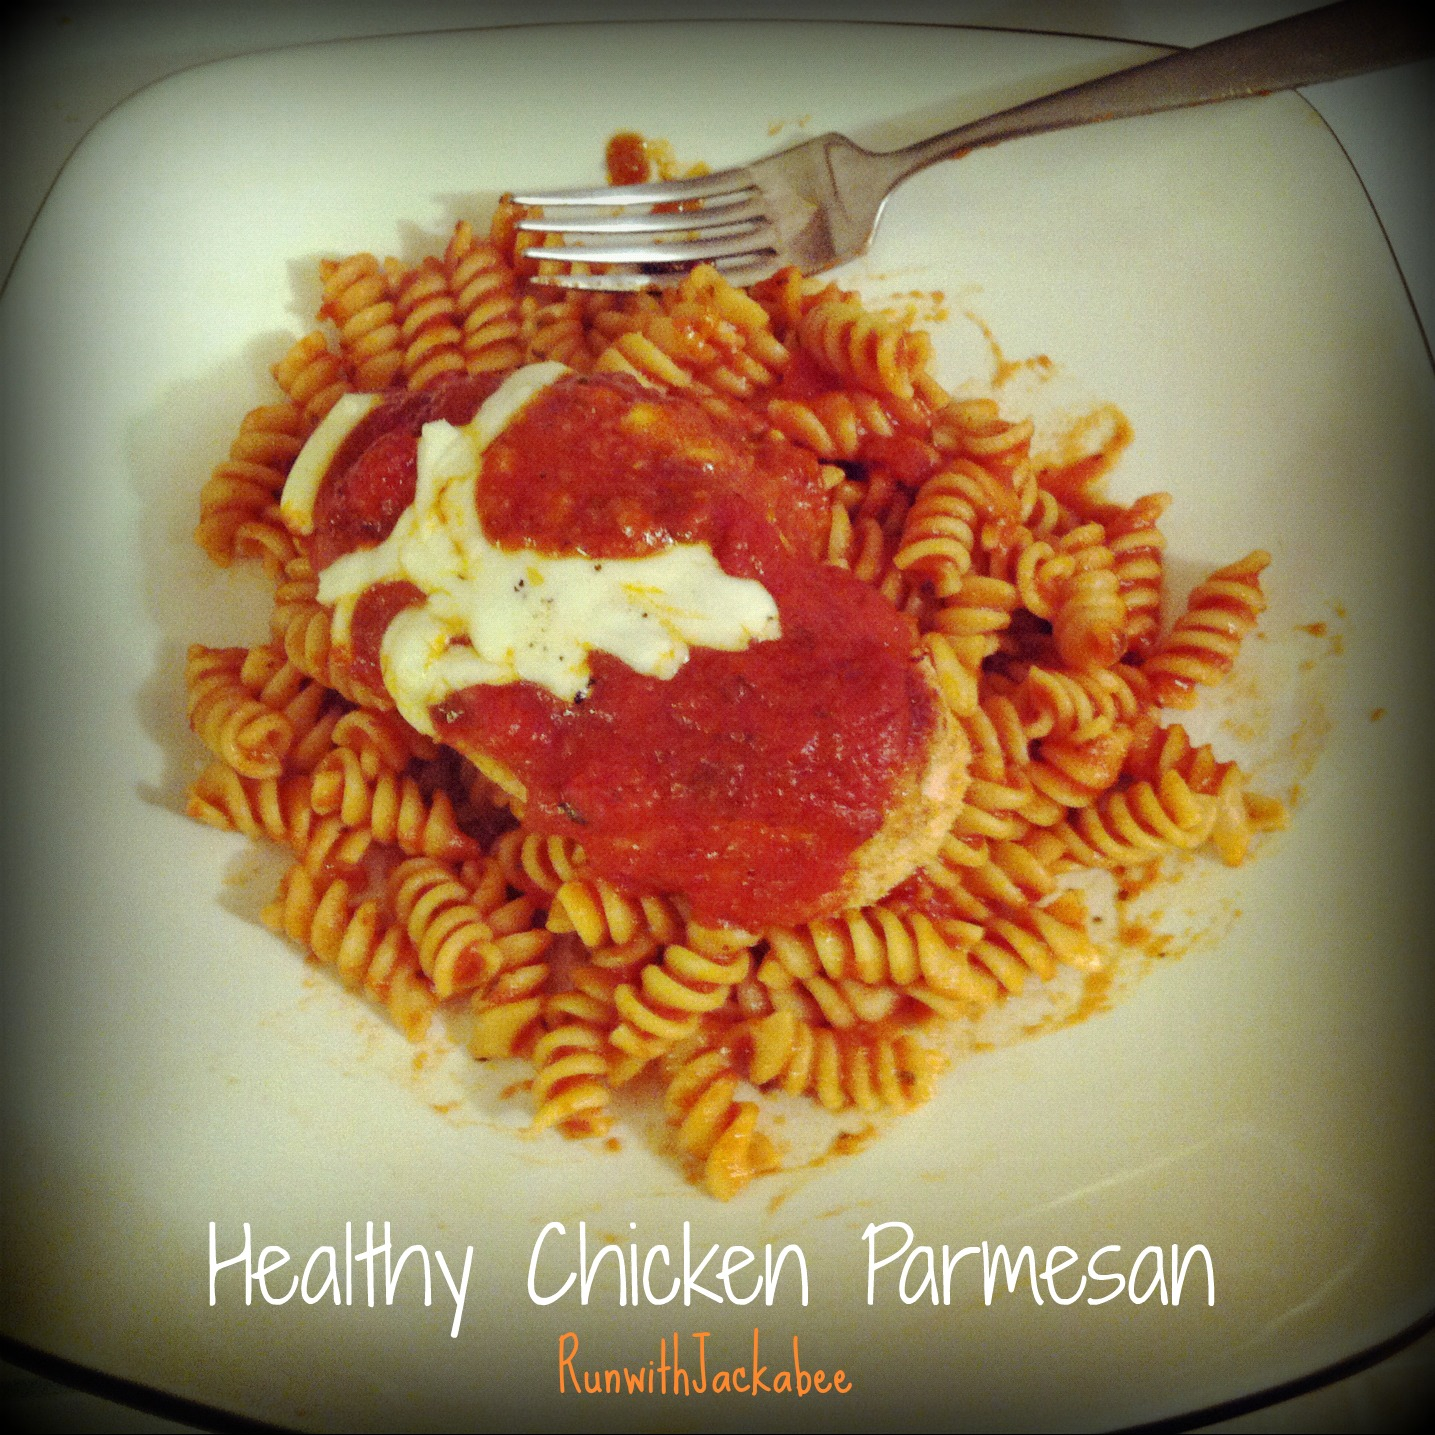 RunwithJackabee: Healthy Baked Chicken Parmesan